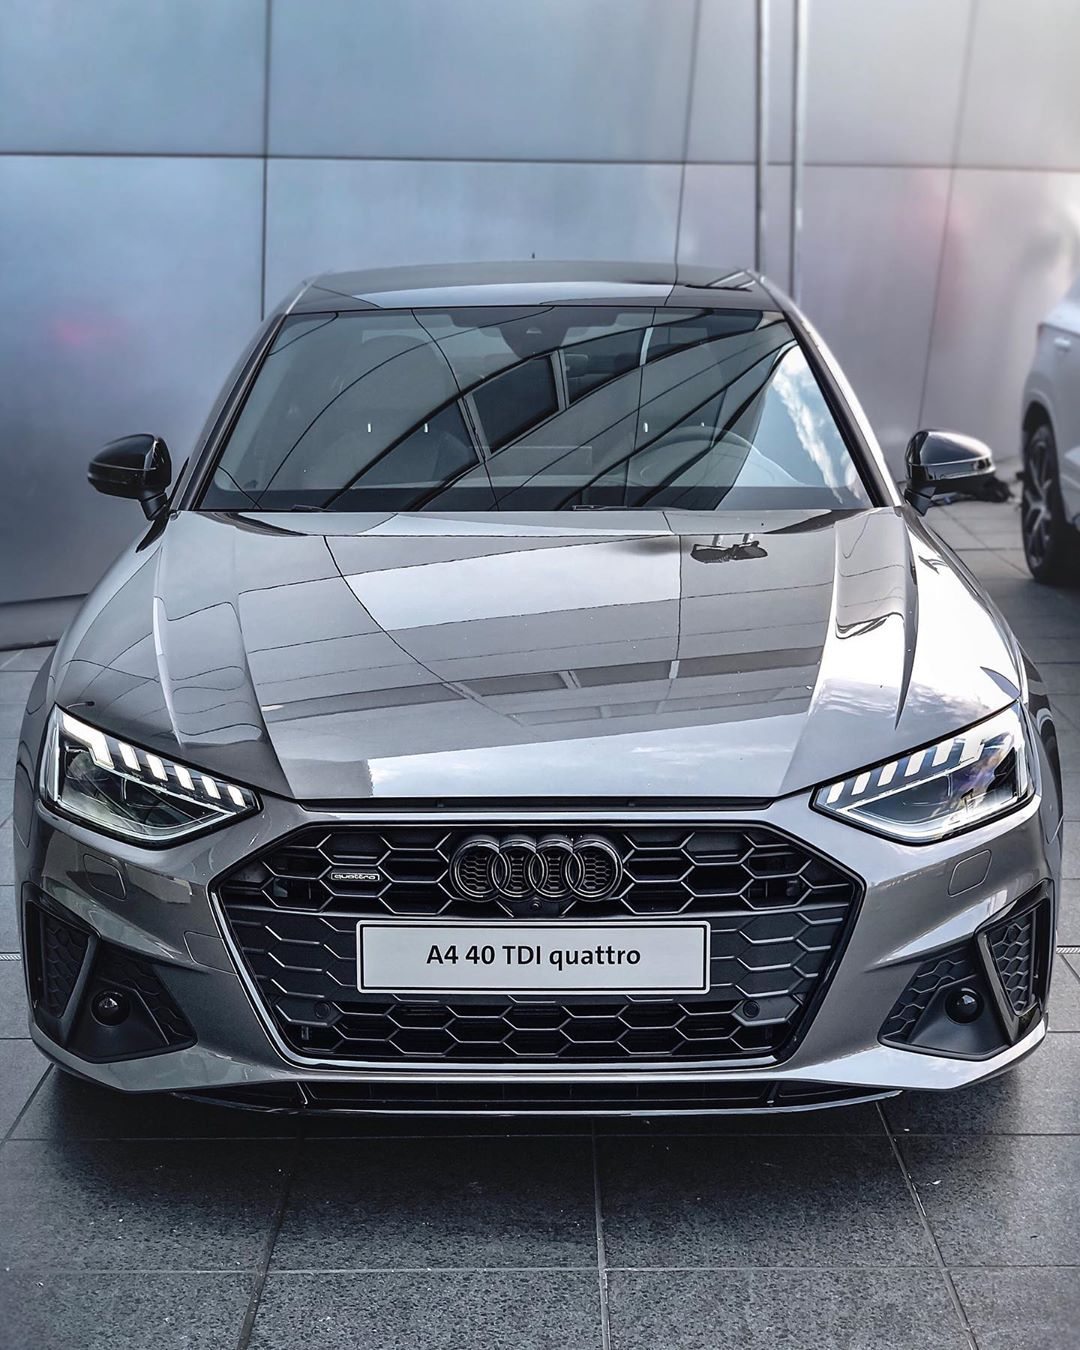 "A4 Facelift MY2020 ☝️…I'm a huge fan of this Update, looks great already as the ""standard"" S-Line model with those optional blacked out badges! Screen is super-intuitive as well although the MMI controller is gone #audia4 #audia4b9 #audia4facelift #a4facelift #a4b9 #sline #a4sline #automanntv #a440tdi #40tdi"